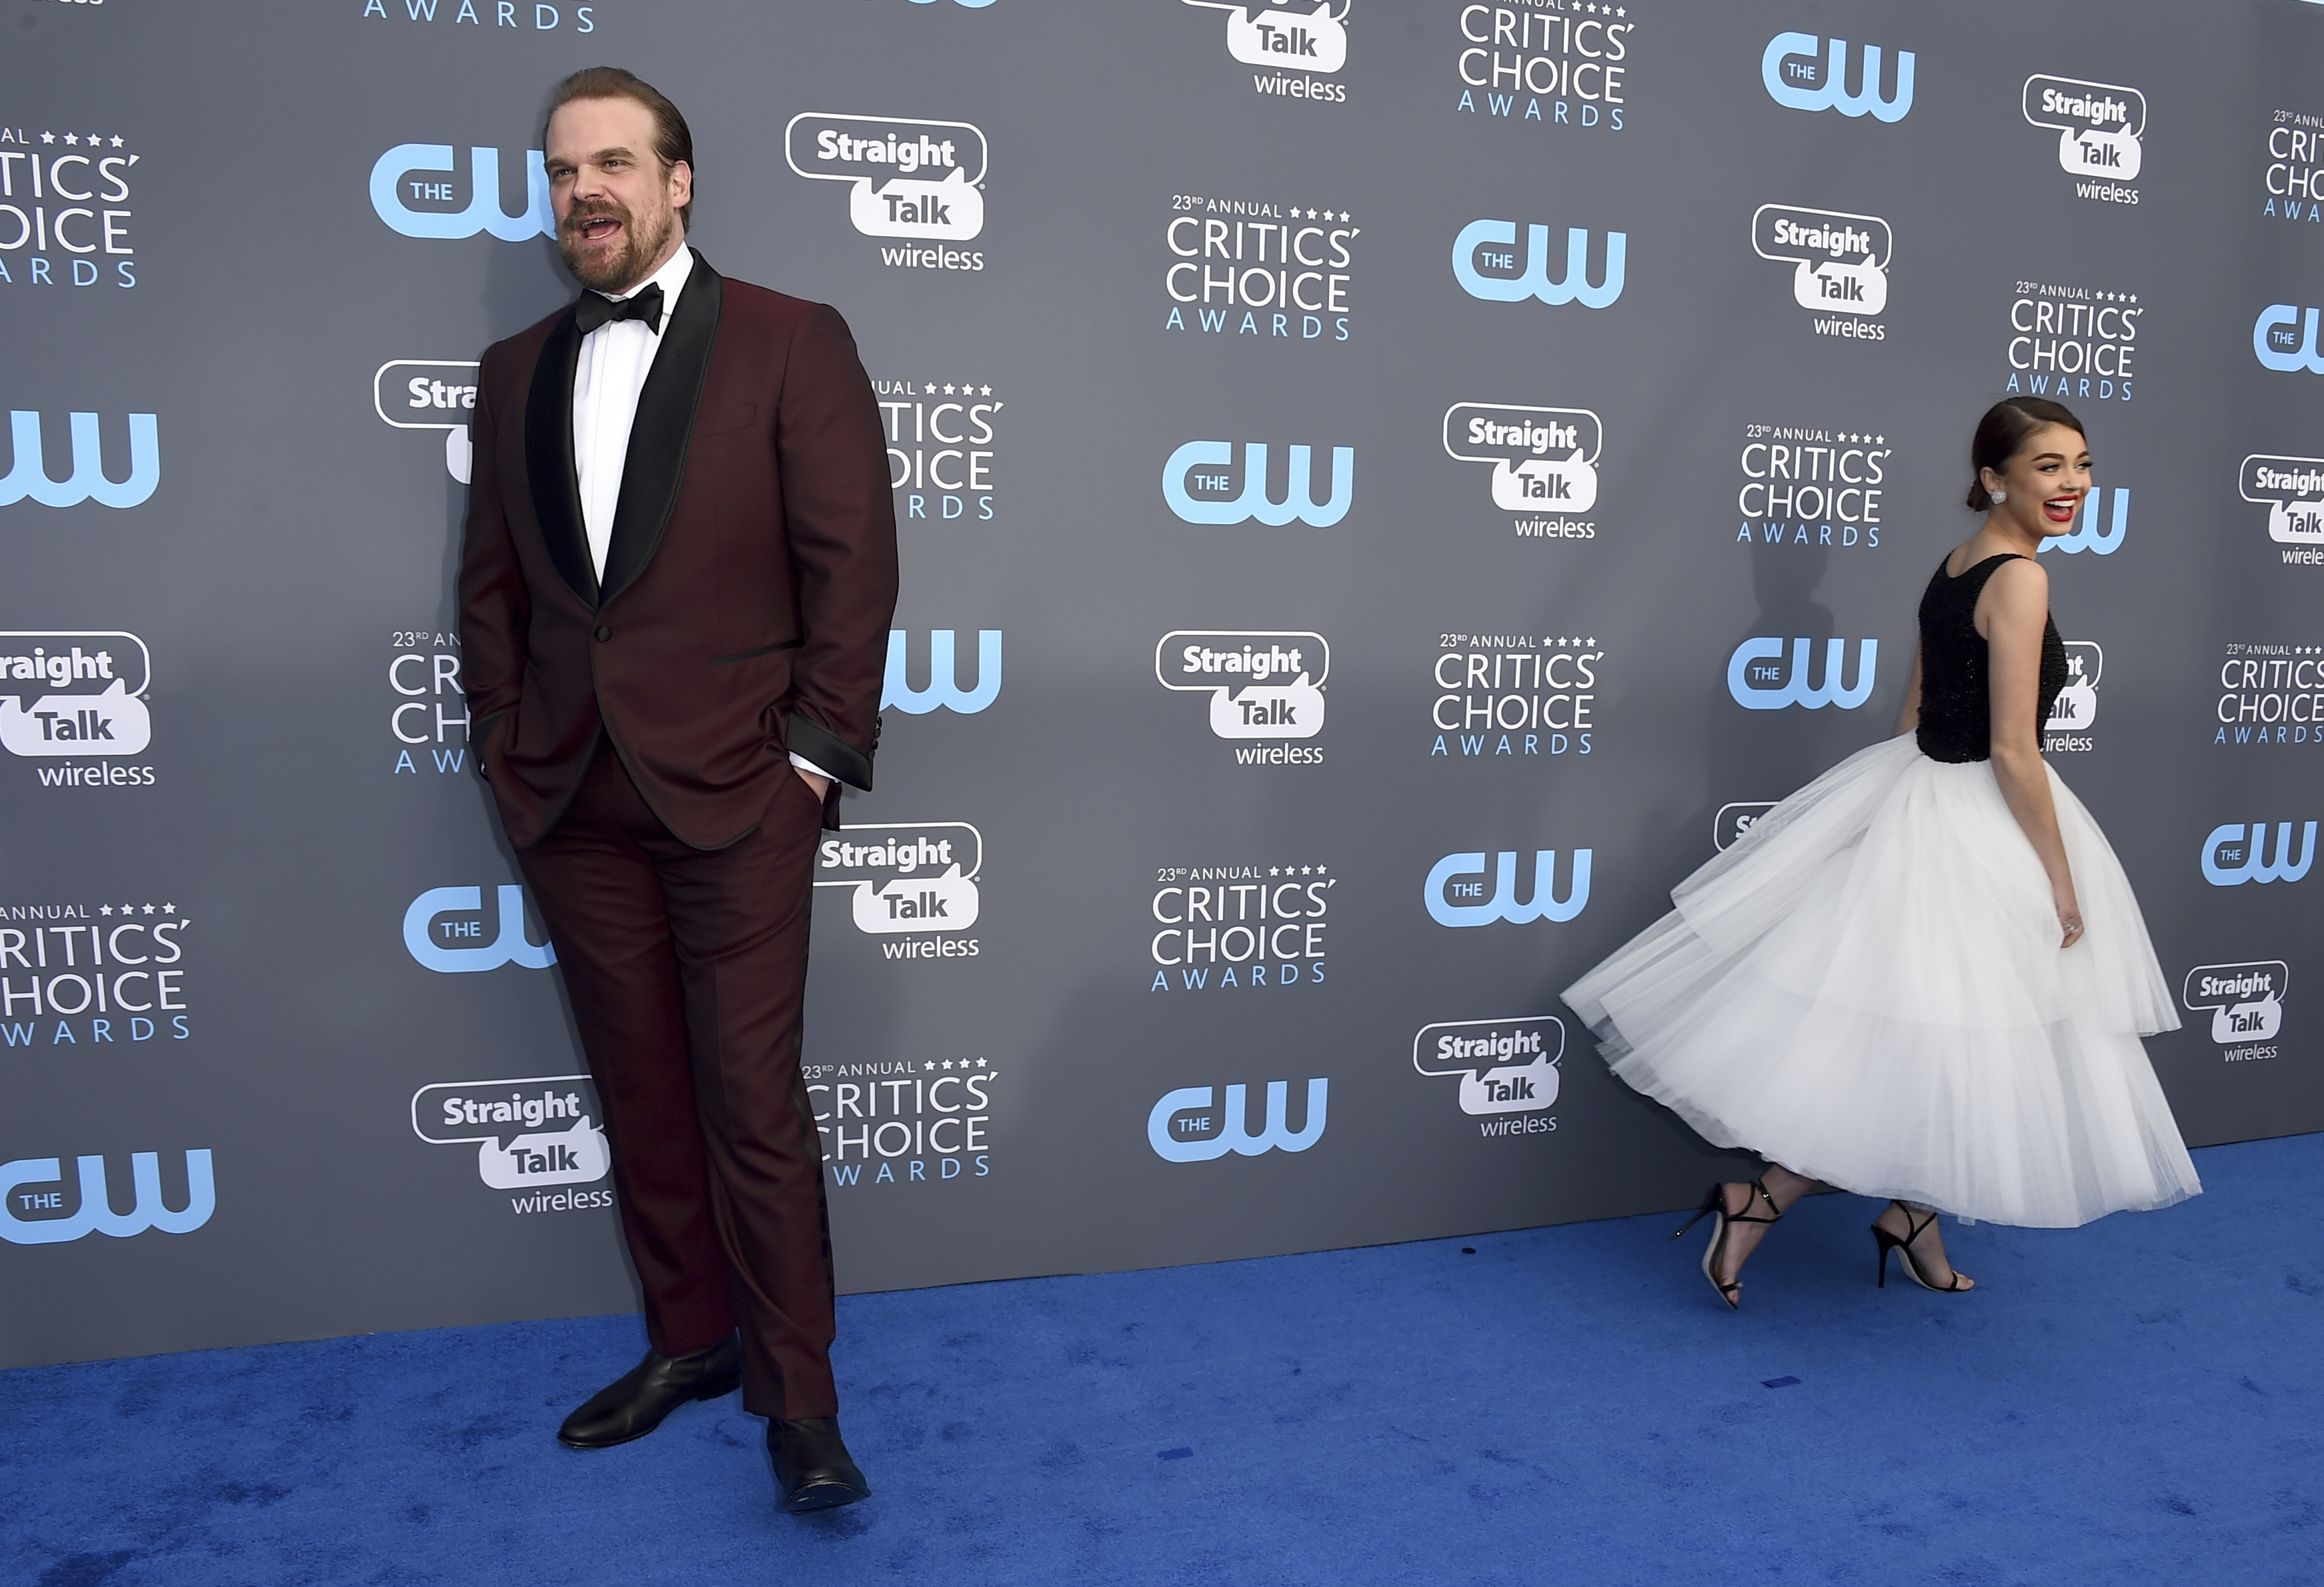 <div class='meta'><div class='origin-logo' data-origin='AP'></div><span class='caption-text' data-credit='Jordan Strauss/Invision/AP'>David Harbour, left, and Sarah Hyland arrive at the 23rd annual Critics' Choice Awards at the Barker Hangar on Thursday, Jan. 11, 2018, in Santa Monica, Calif.</span></div>